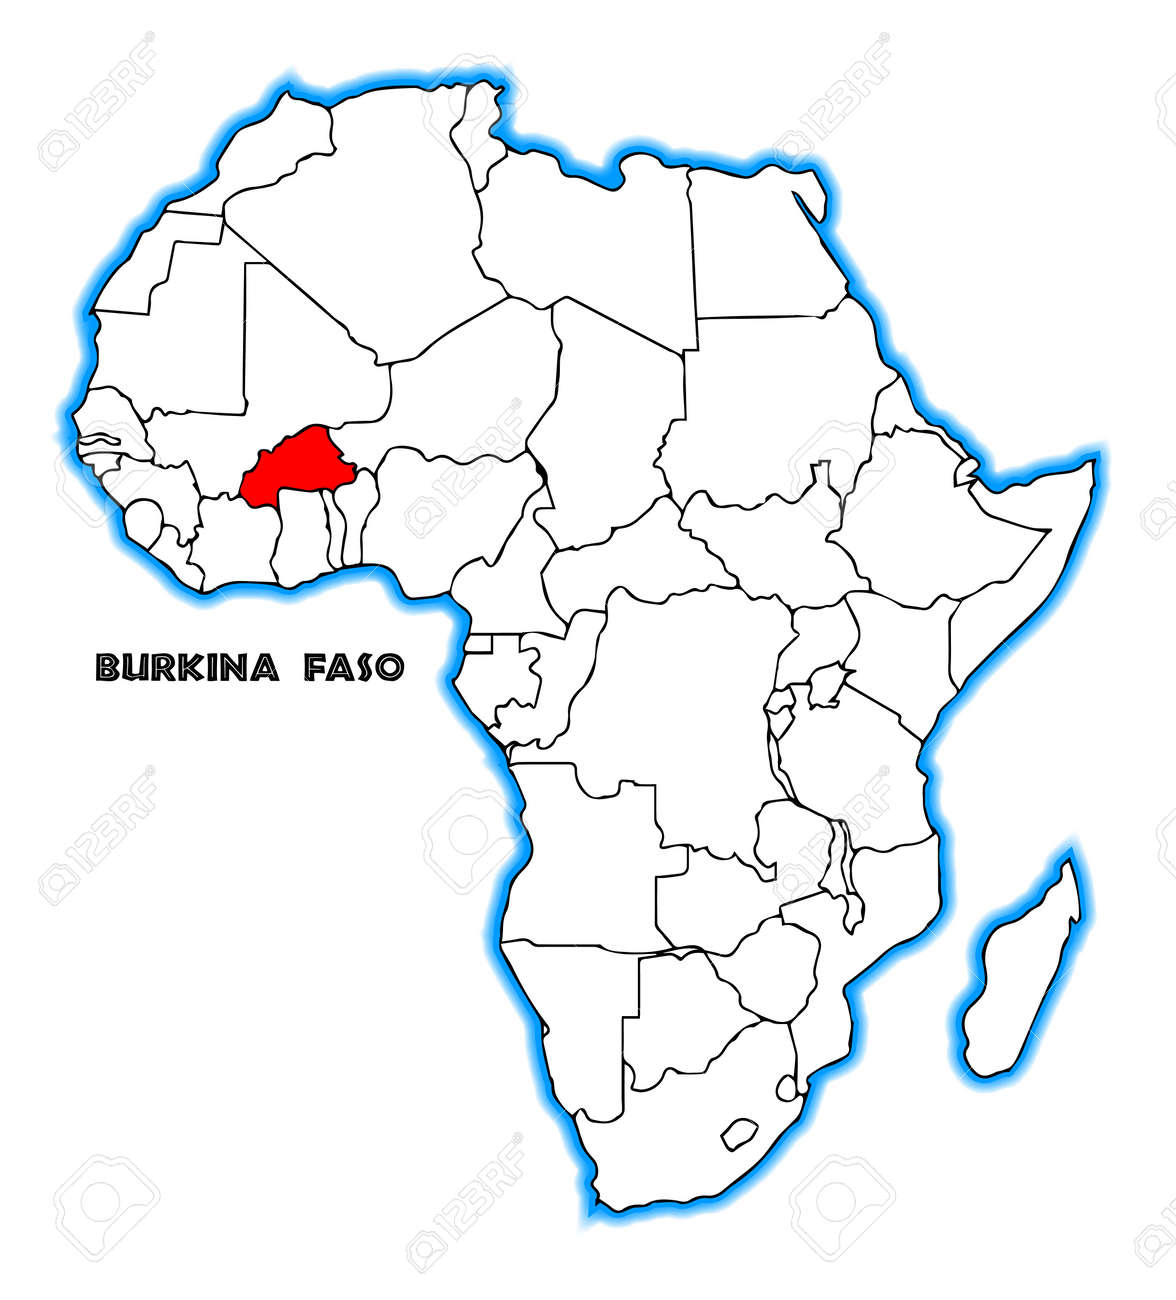 burkina faso carte afrique Burkina Faso Outline Inset Into A Map Of Africa Over A White